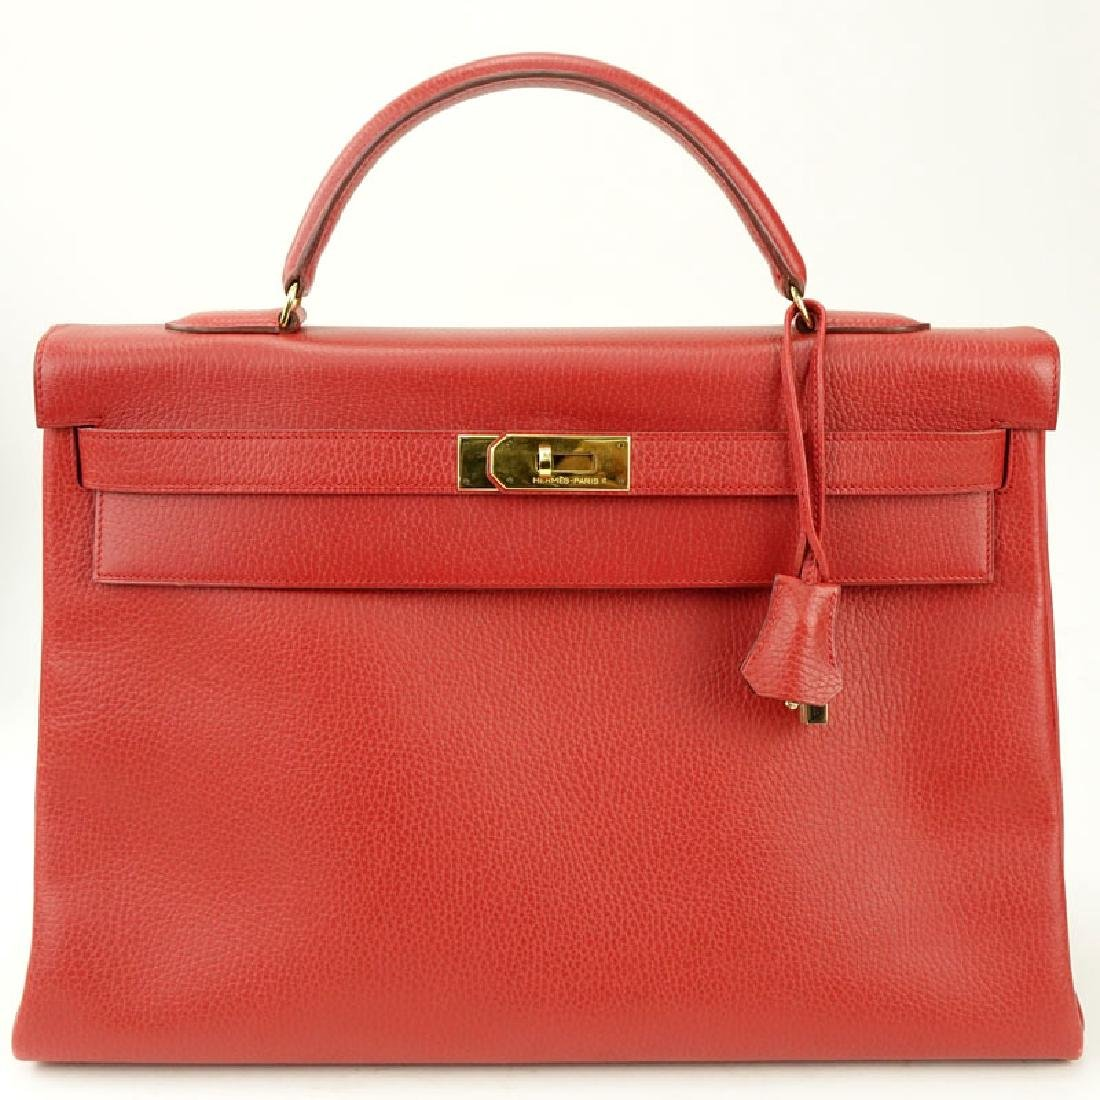 Hermès Red Calfskin Leather Kelly 40 Bag. With